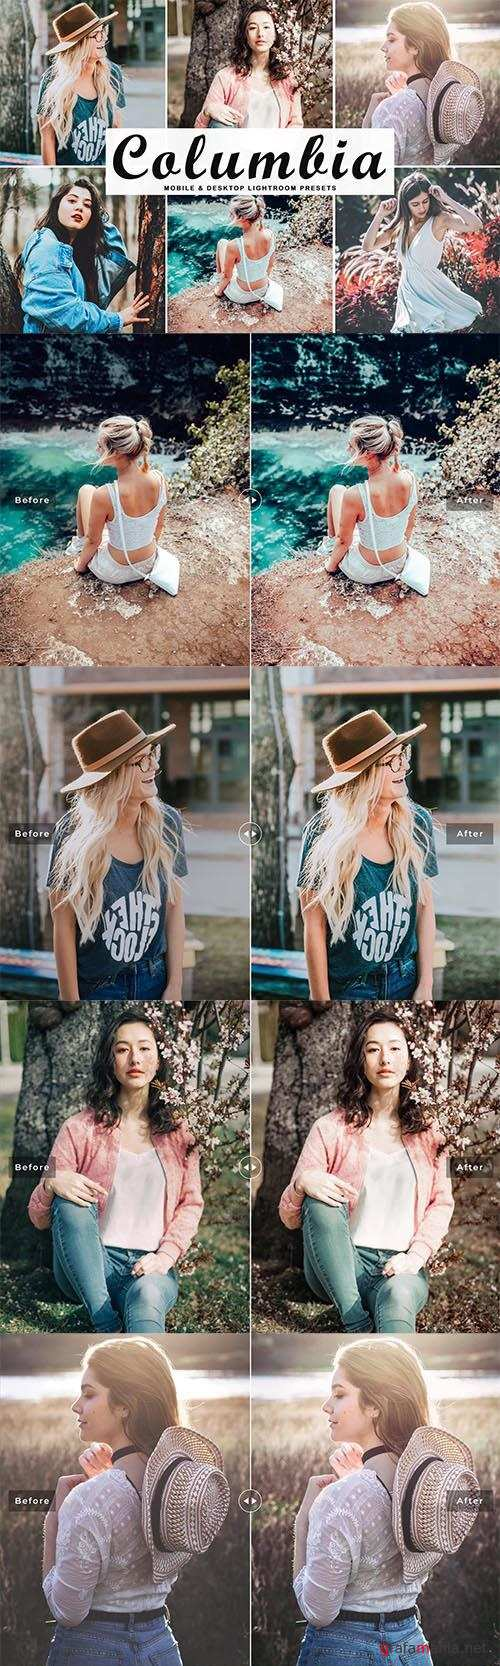 Columbia Lightroom Presets Pack - Mobile & Desktop